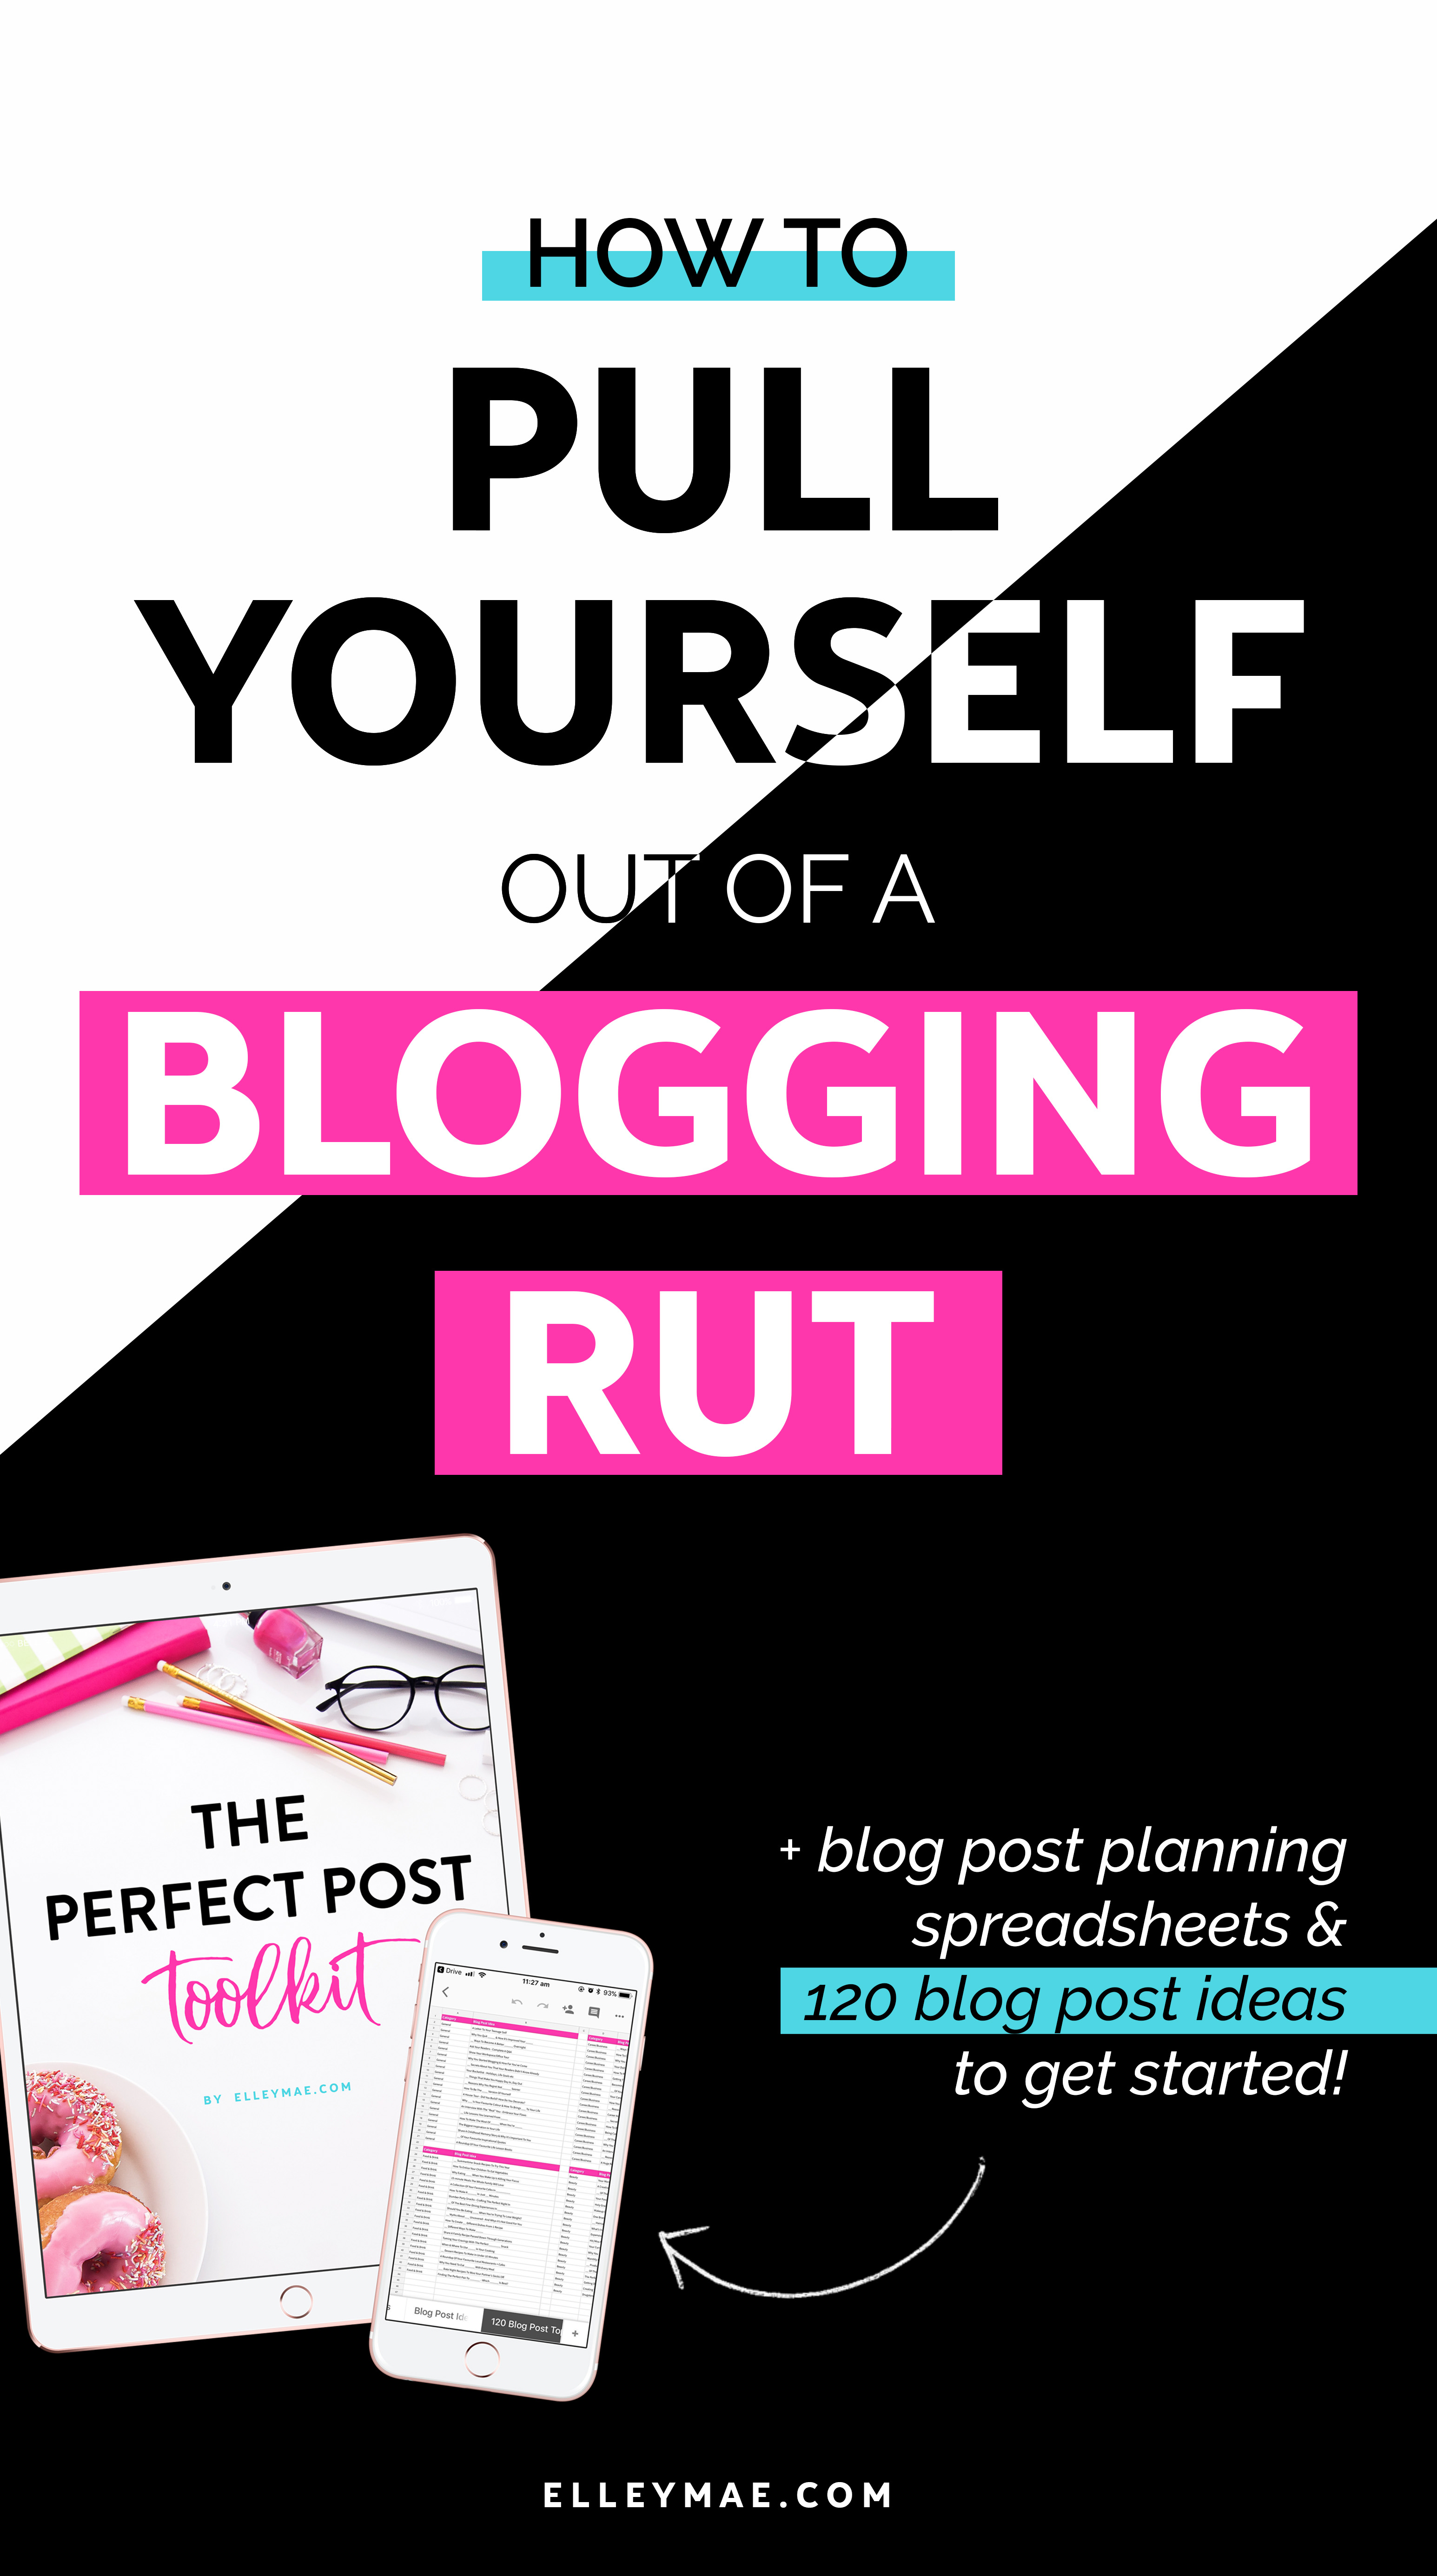 Being in a blogging rut freakin' sucks, right?! Well, no more do you have to feel like you're failing. No more do you have to search for blog post ideas endlessly on Pinterest. In this post you'll learn 3 of the best ways to grow your blog, organise your blog & score over 120 blog post ideas (+ blog post planner sheets!)   blog post ideas, blog planner, blog planner printable, blog printable, blogging rut, in a rut #blogpostideas #blogplanner #planner #blogideas   ElleyMae.com